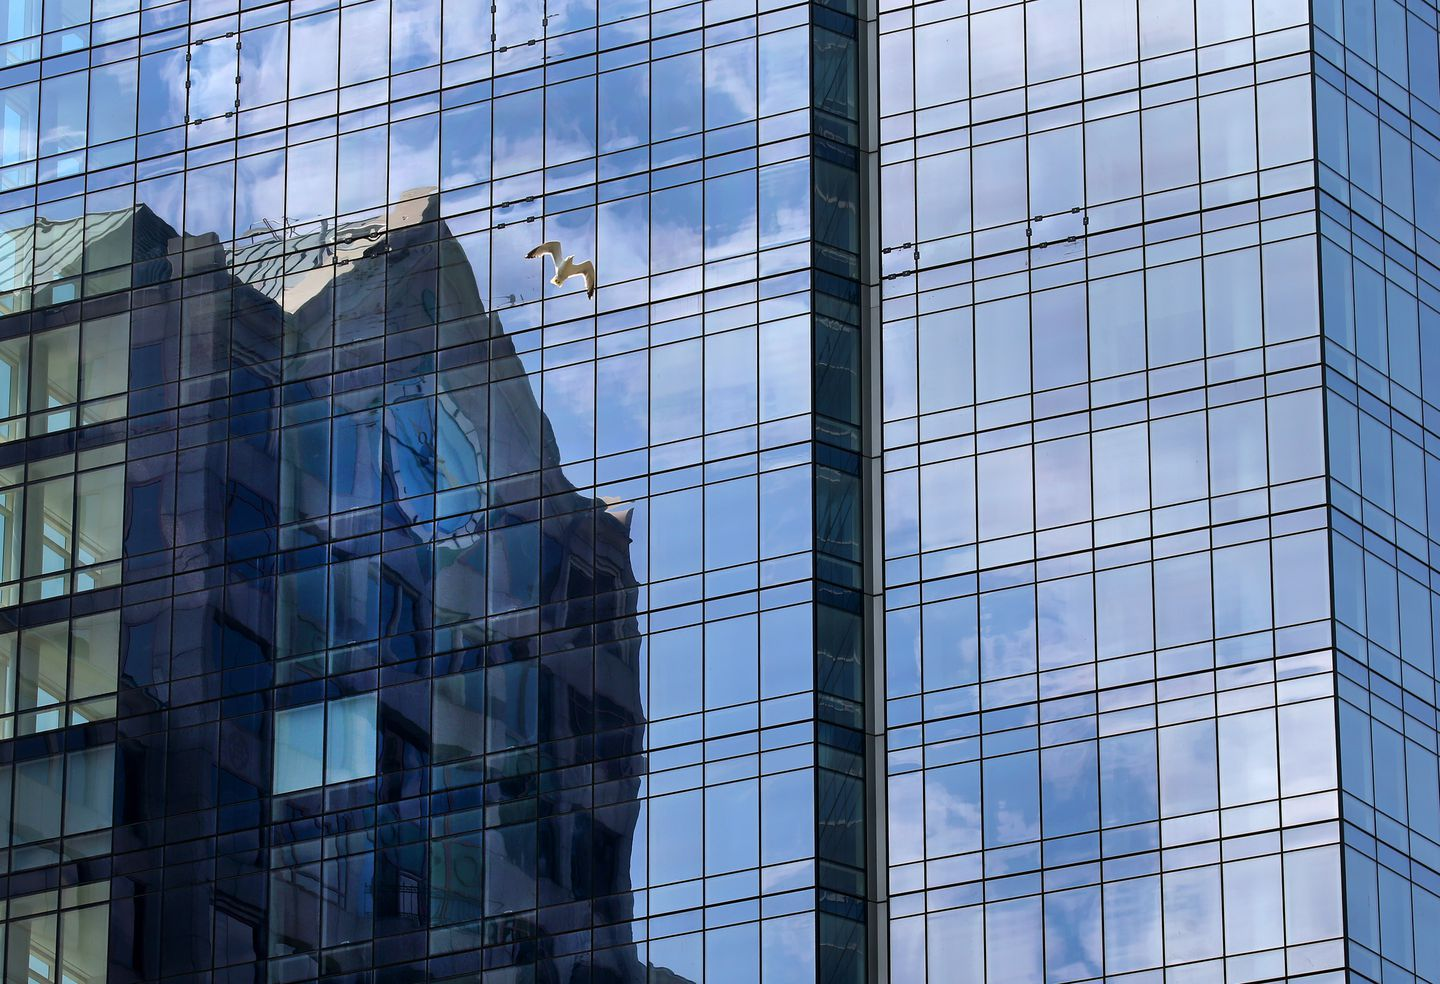 Downtown buildings reflected on the side of Millennium Tower.